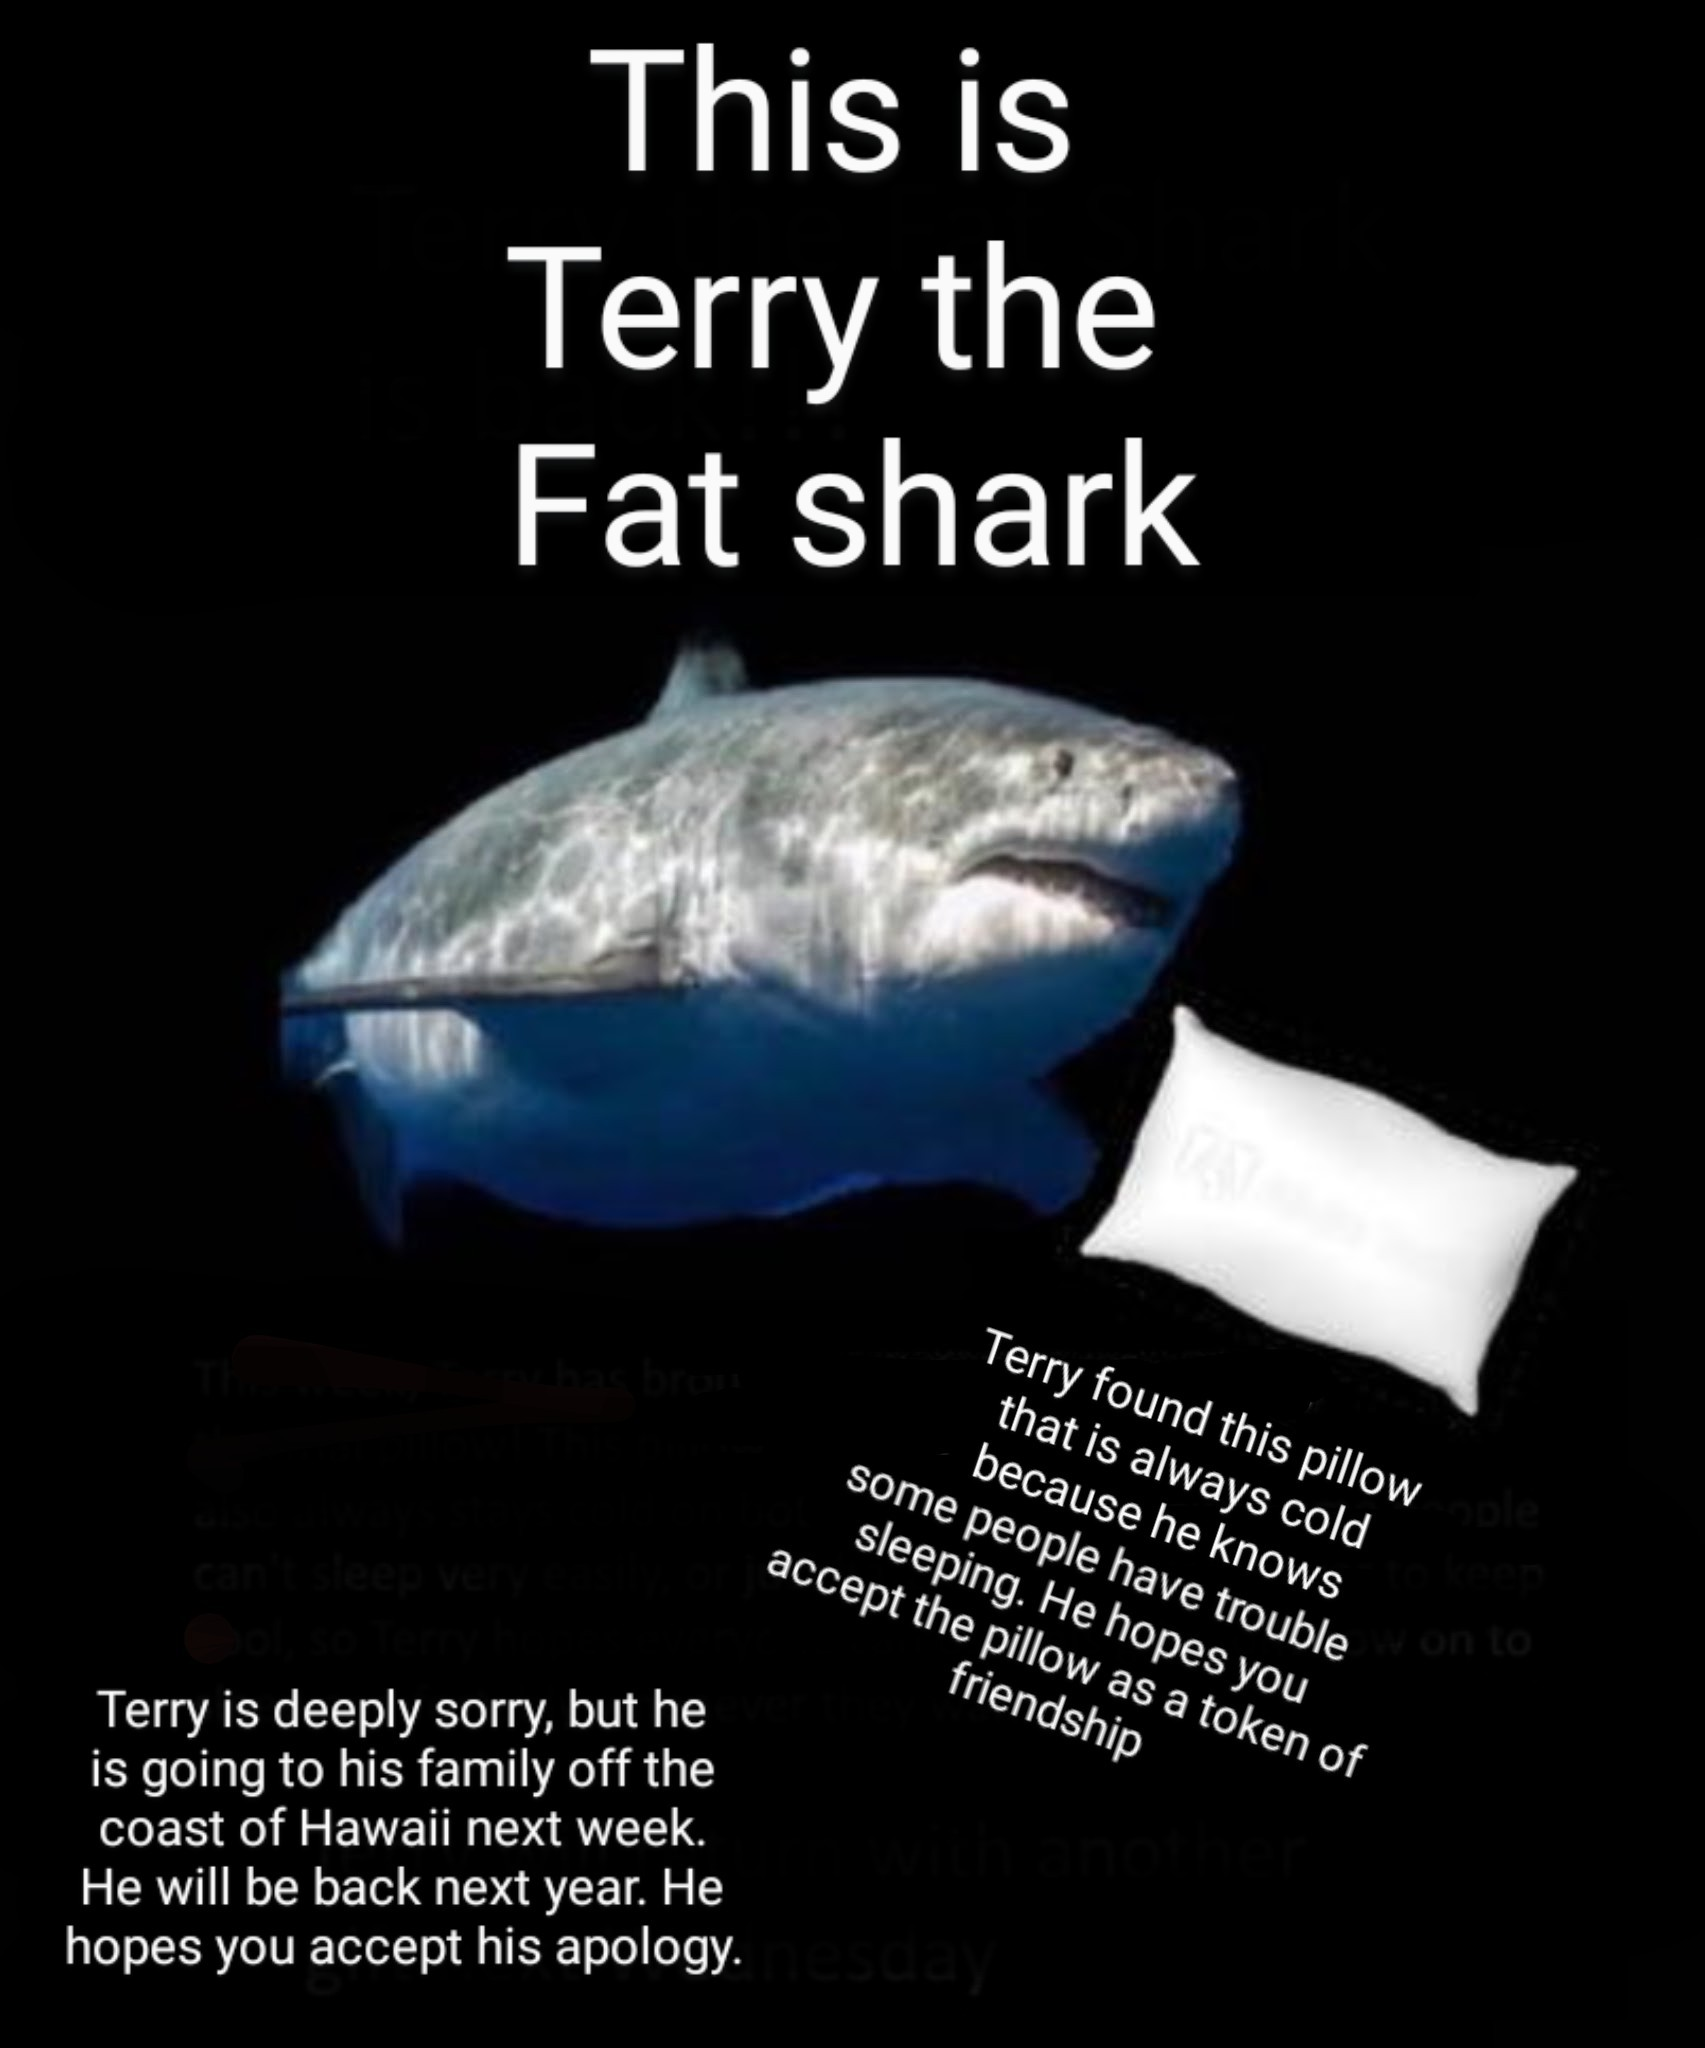 Terry will be thinking of you the whole time - meme